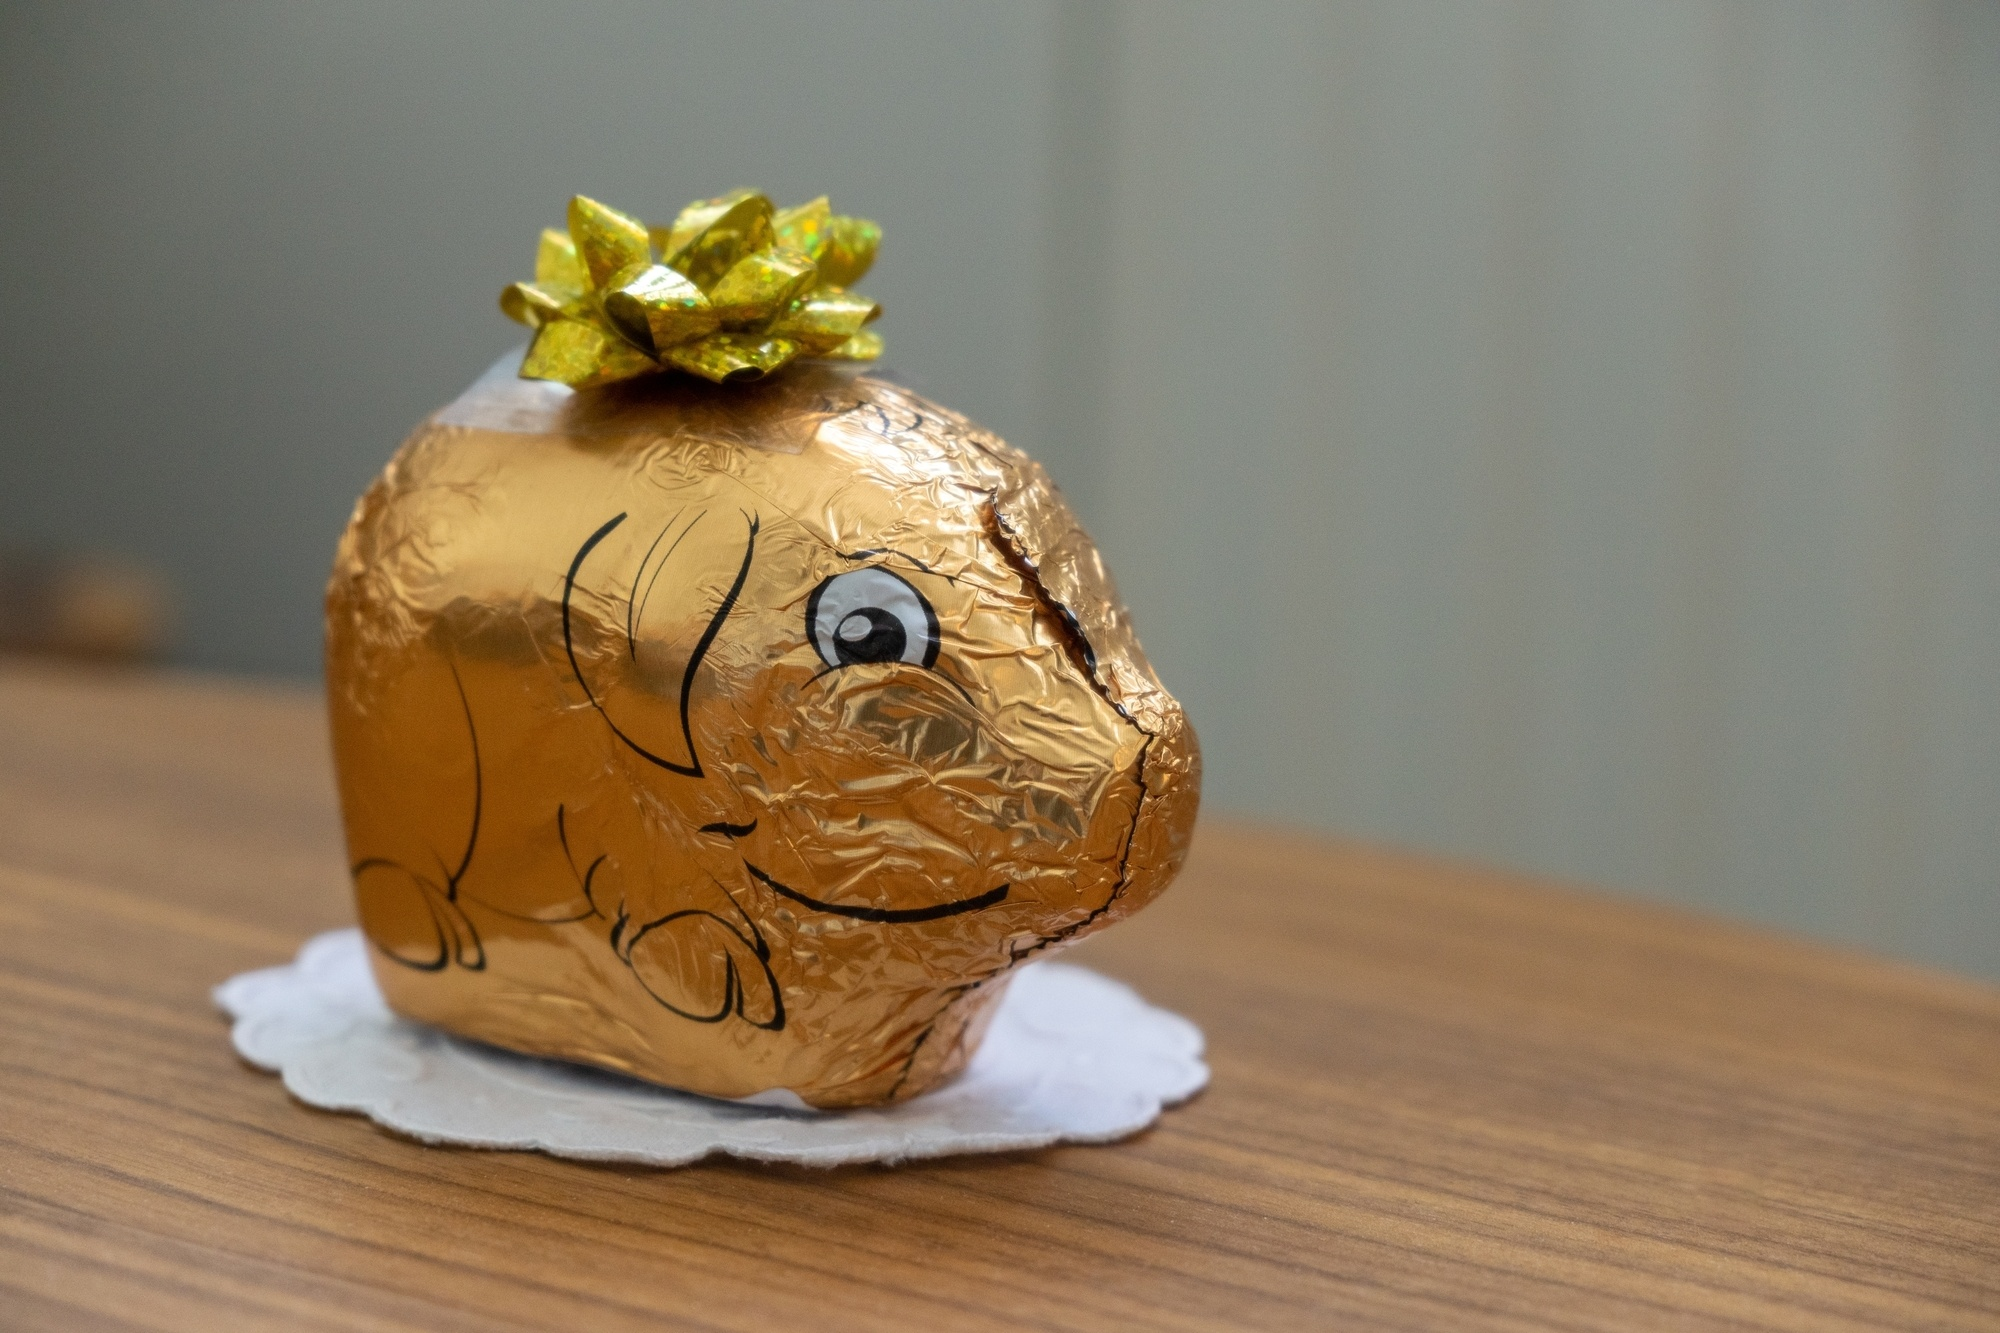 Look for golden pigs made of chocolate in the Czech Republic and Slovakia at Christmastime